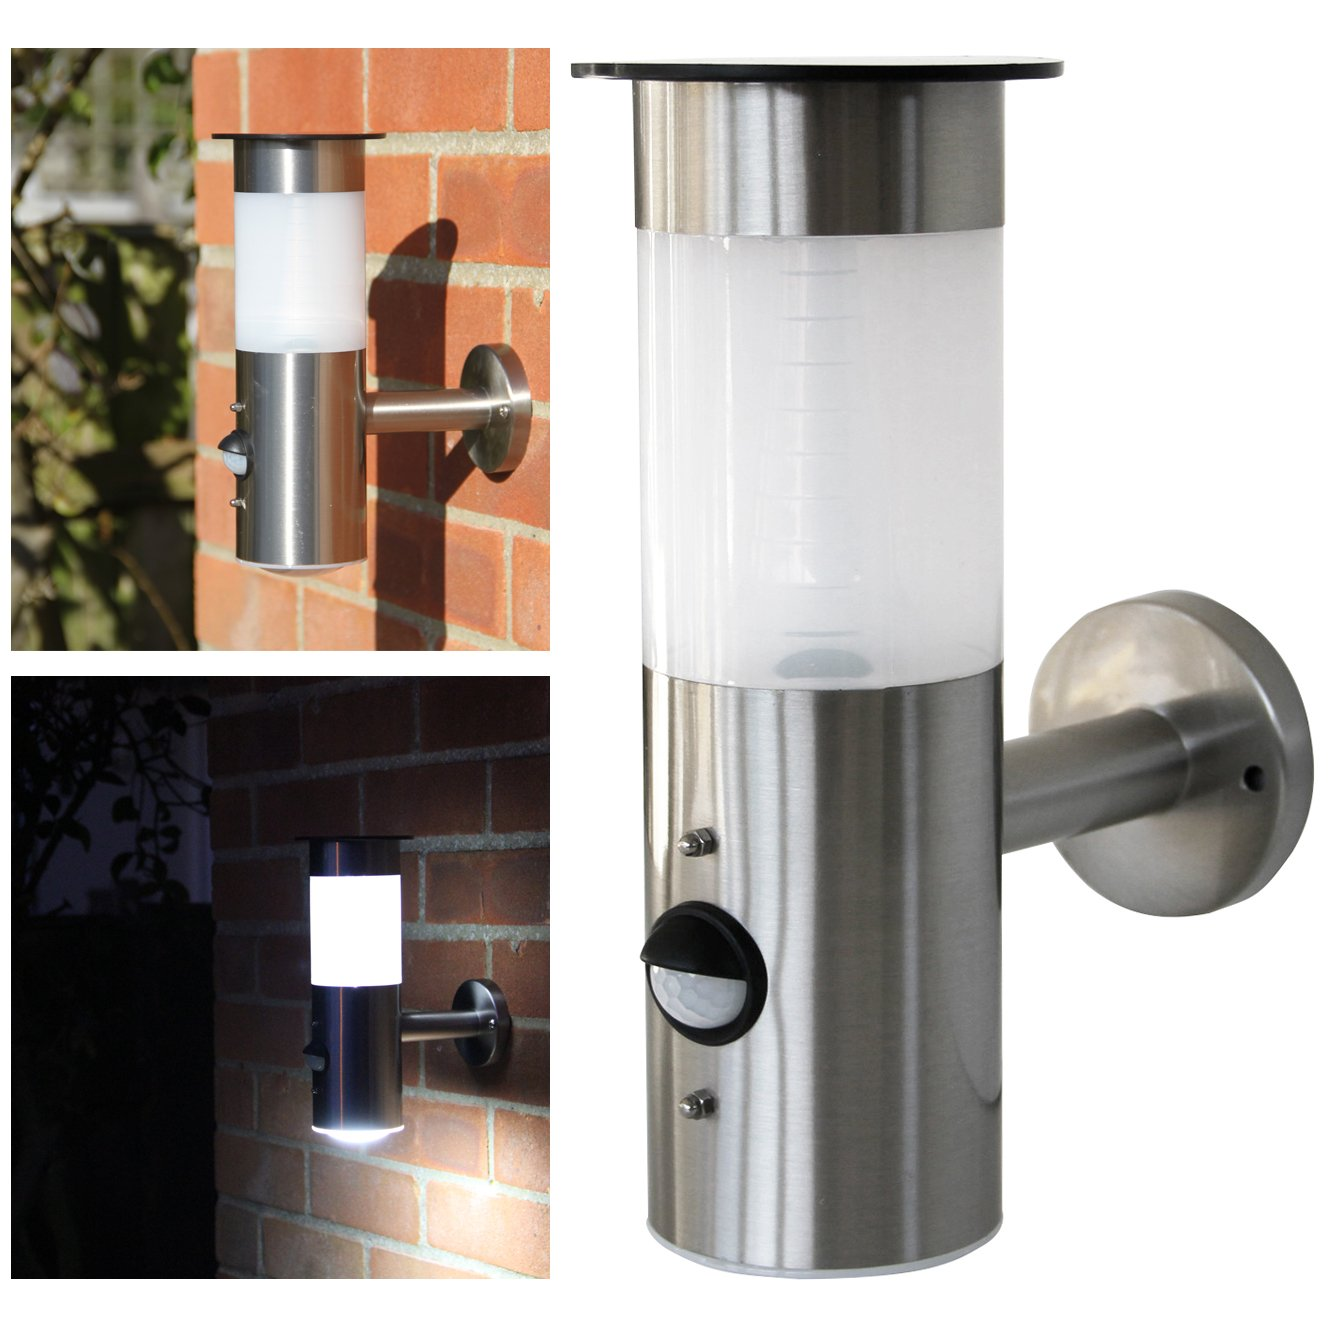 Solar Lights For Brick Wall : Frostfire Solar Wall Light with PIR Motion Sensor eBay